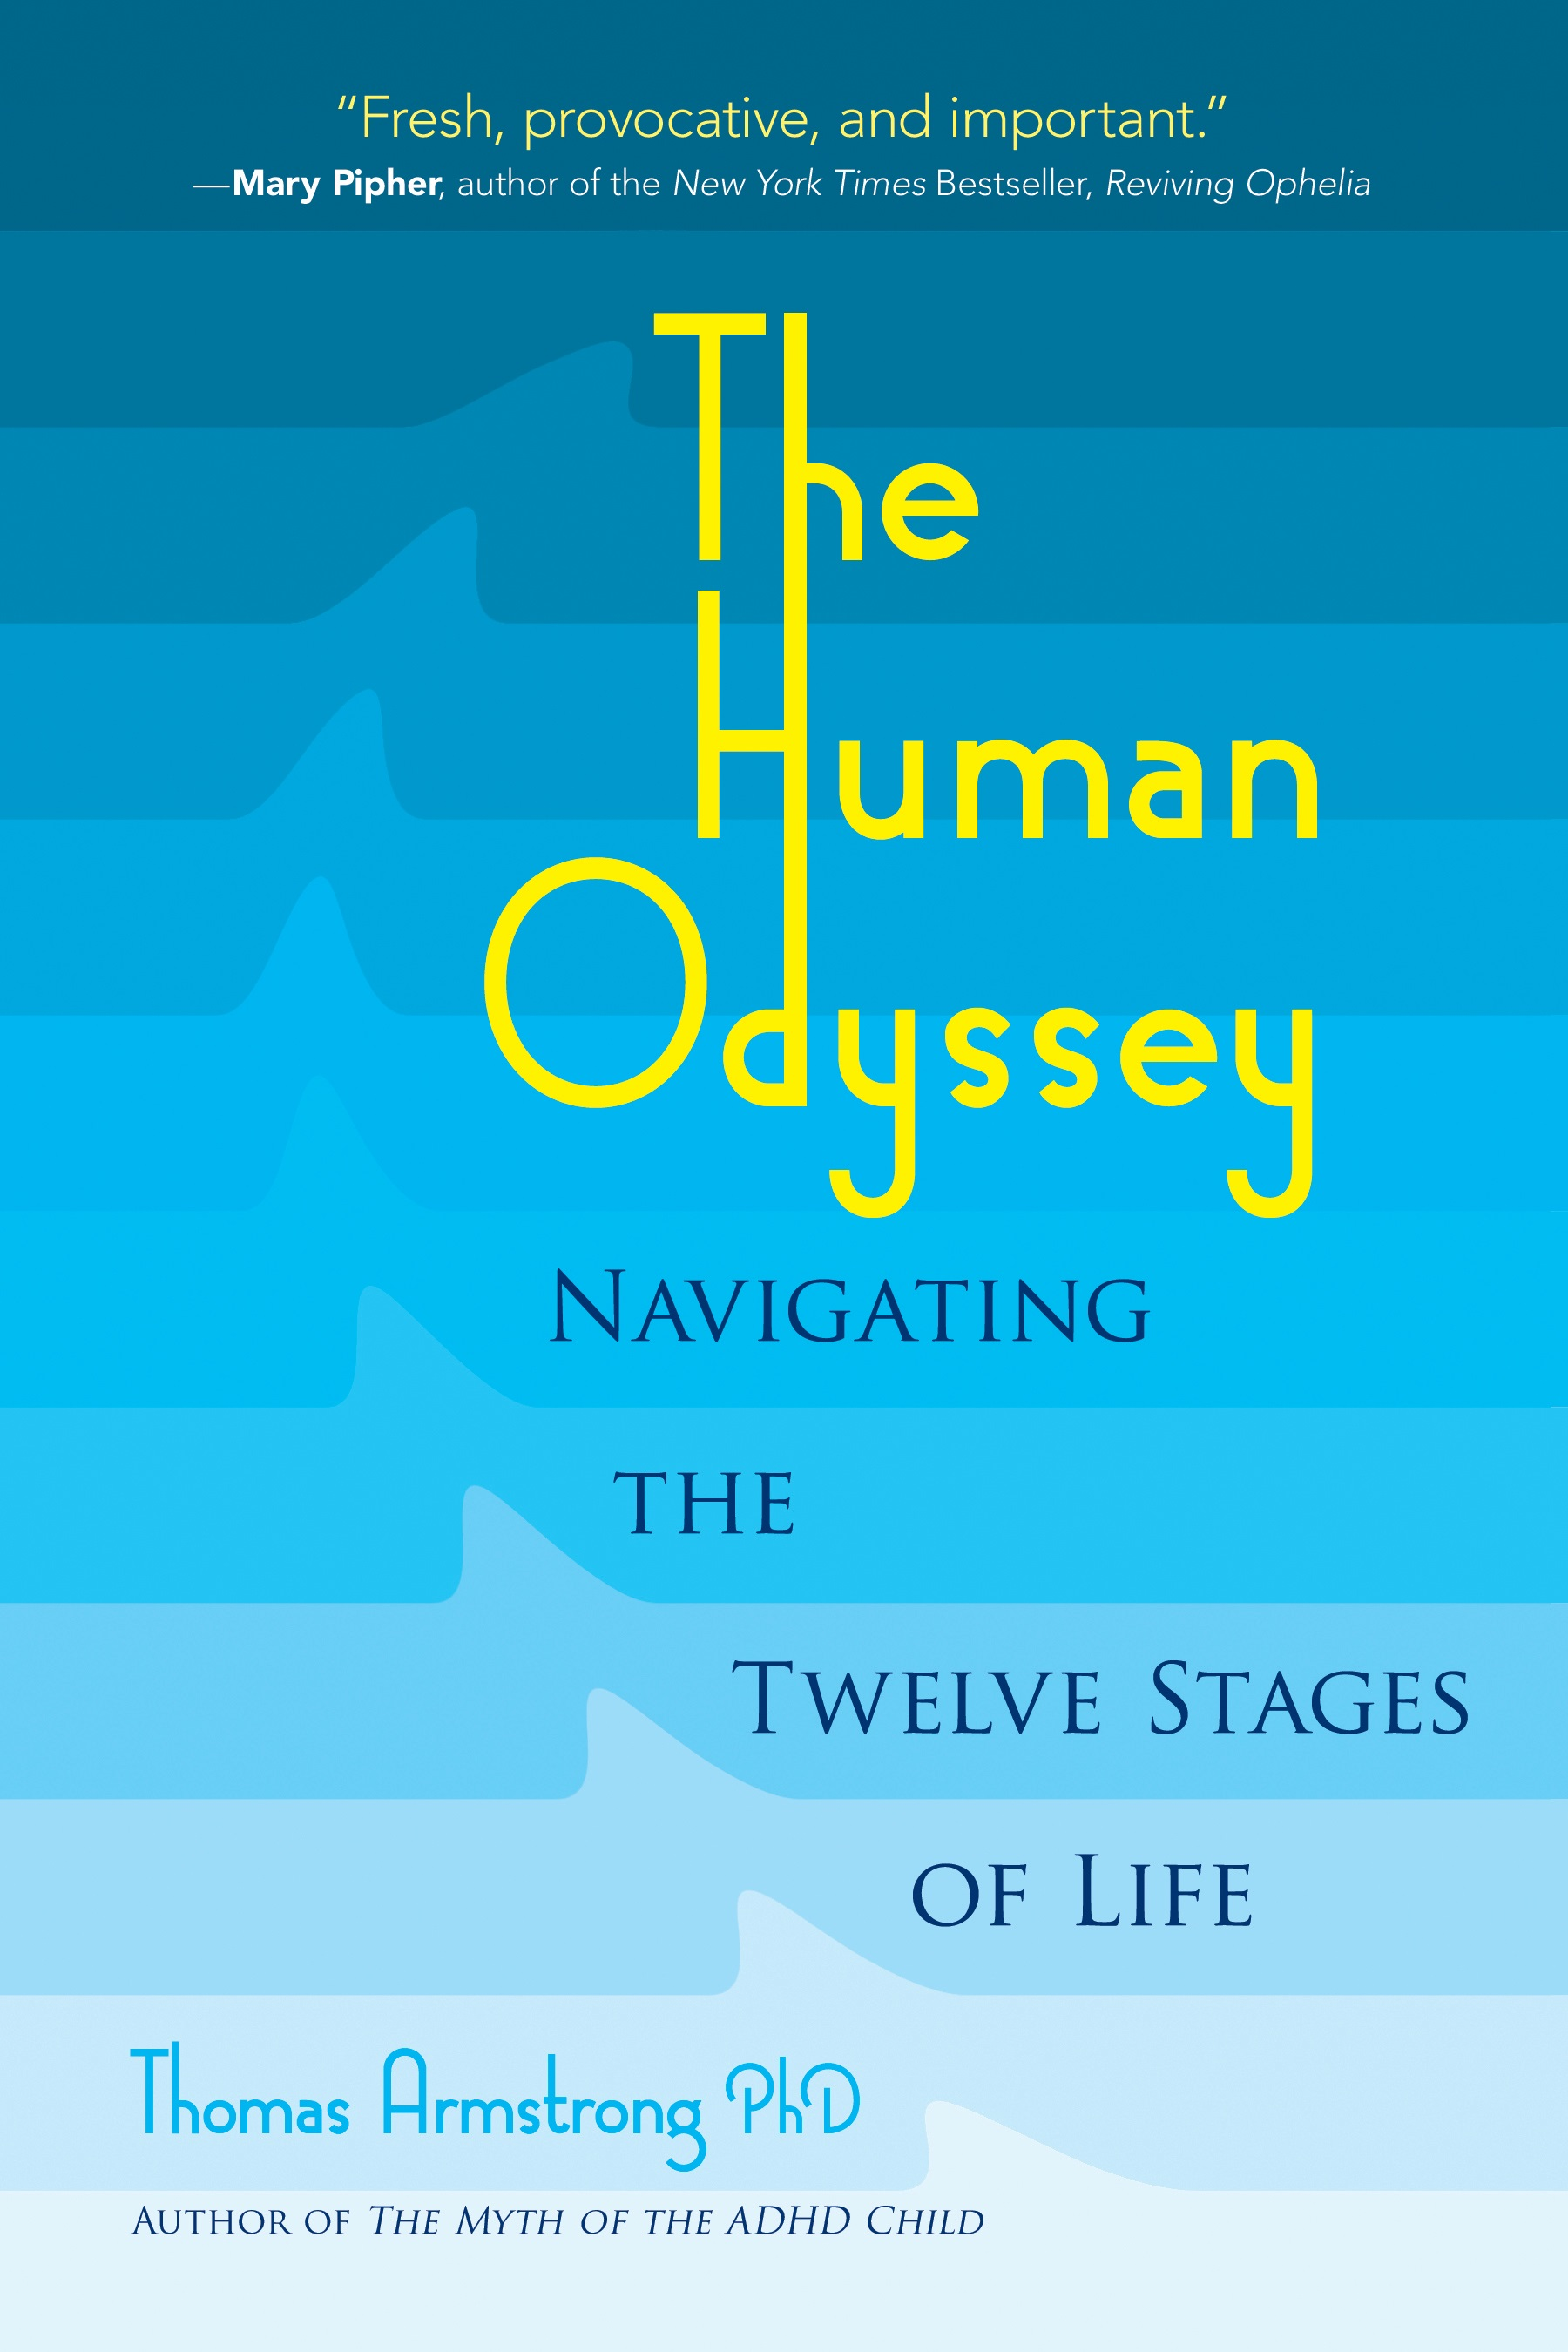 The 12 Stages of Life | Thomas Armstrong, Ph D